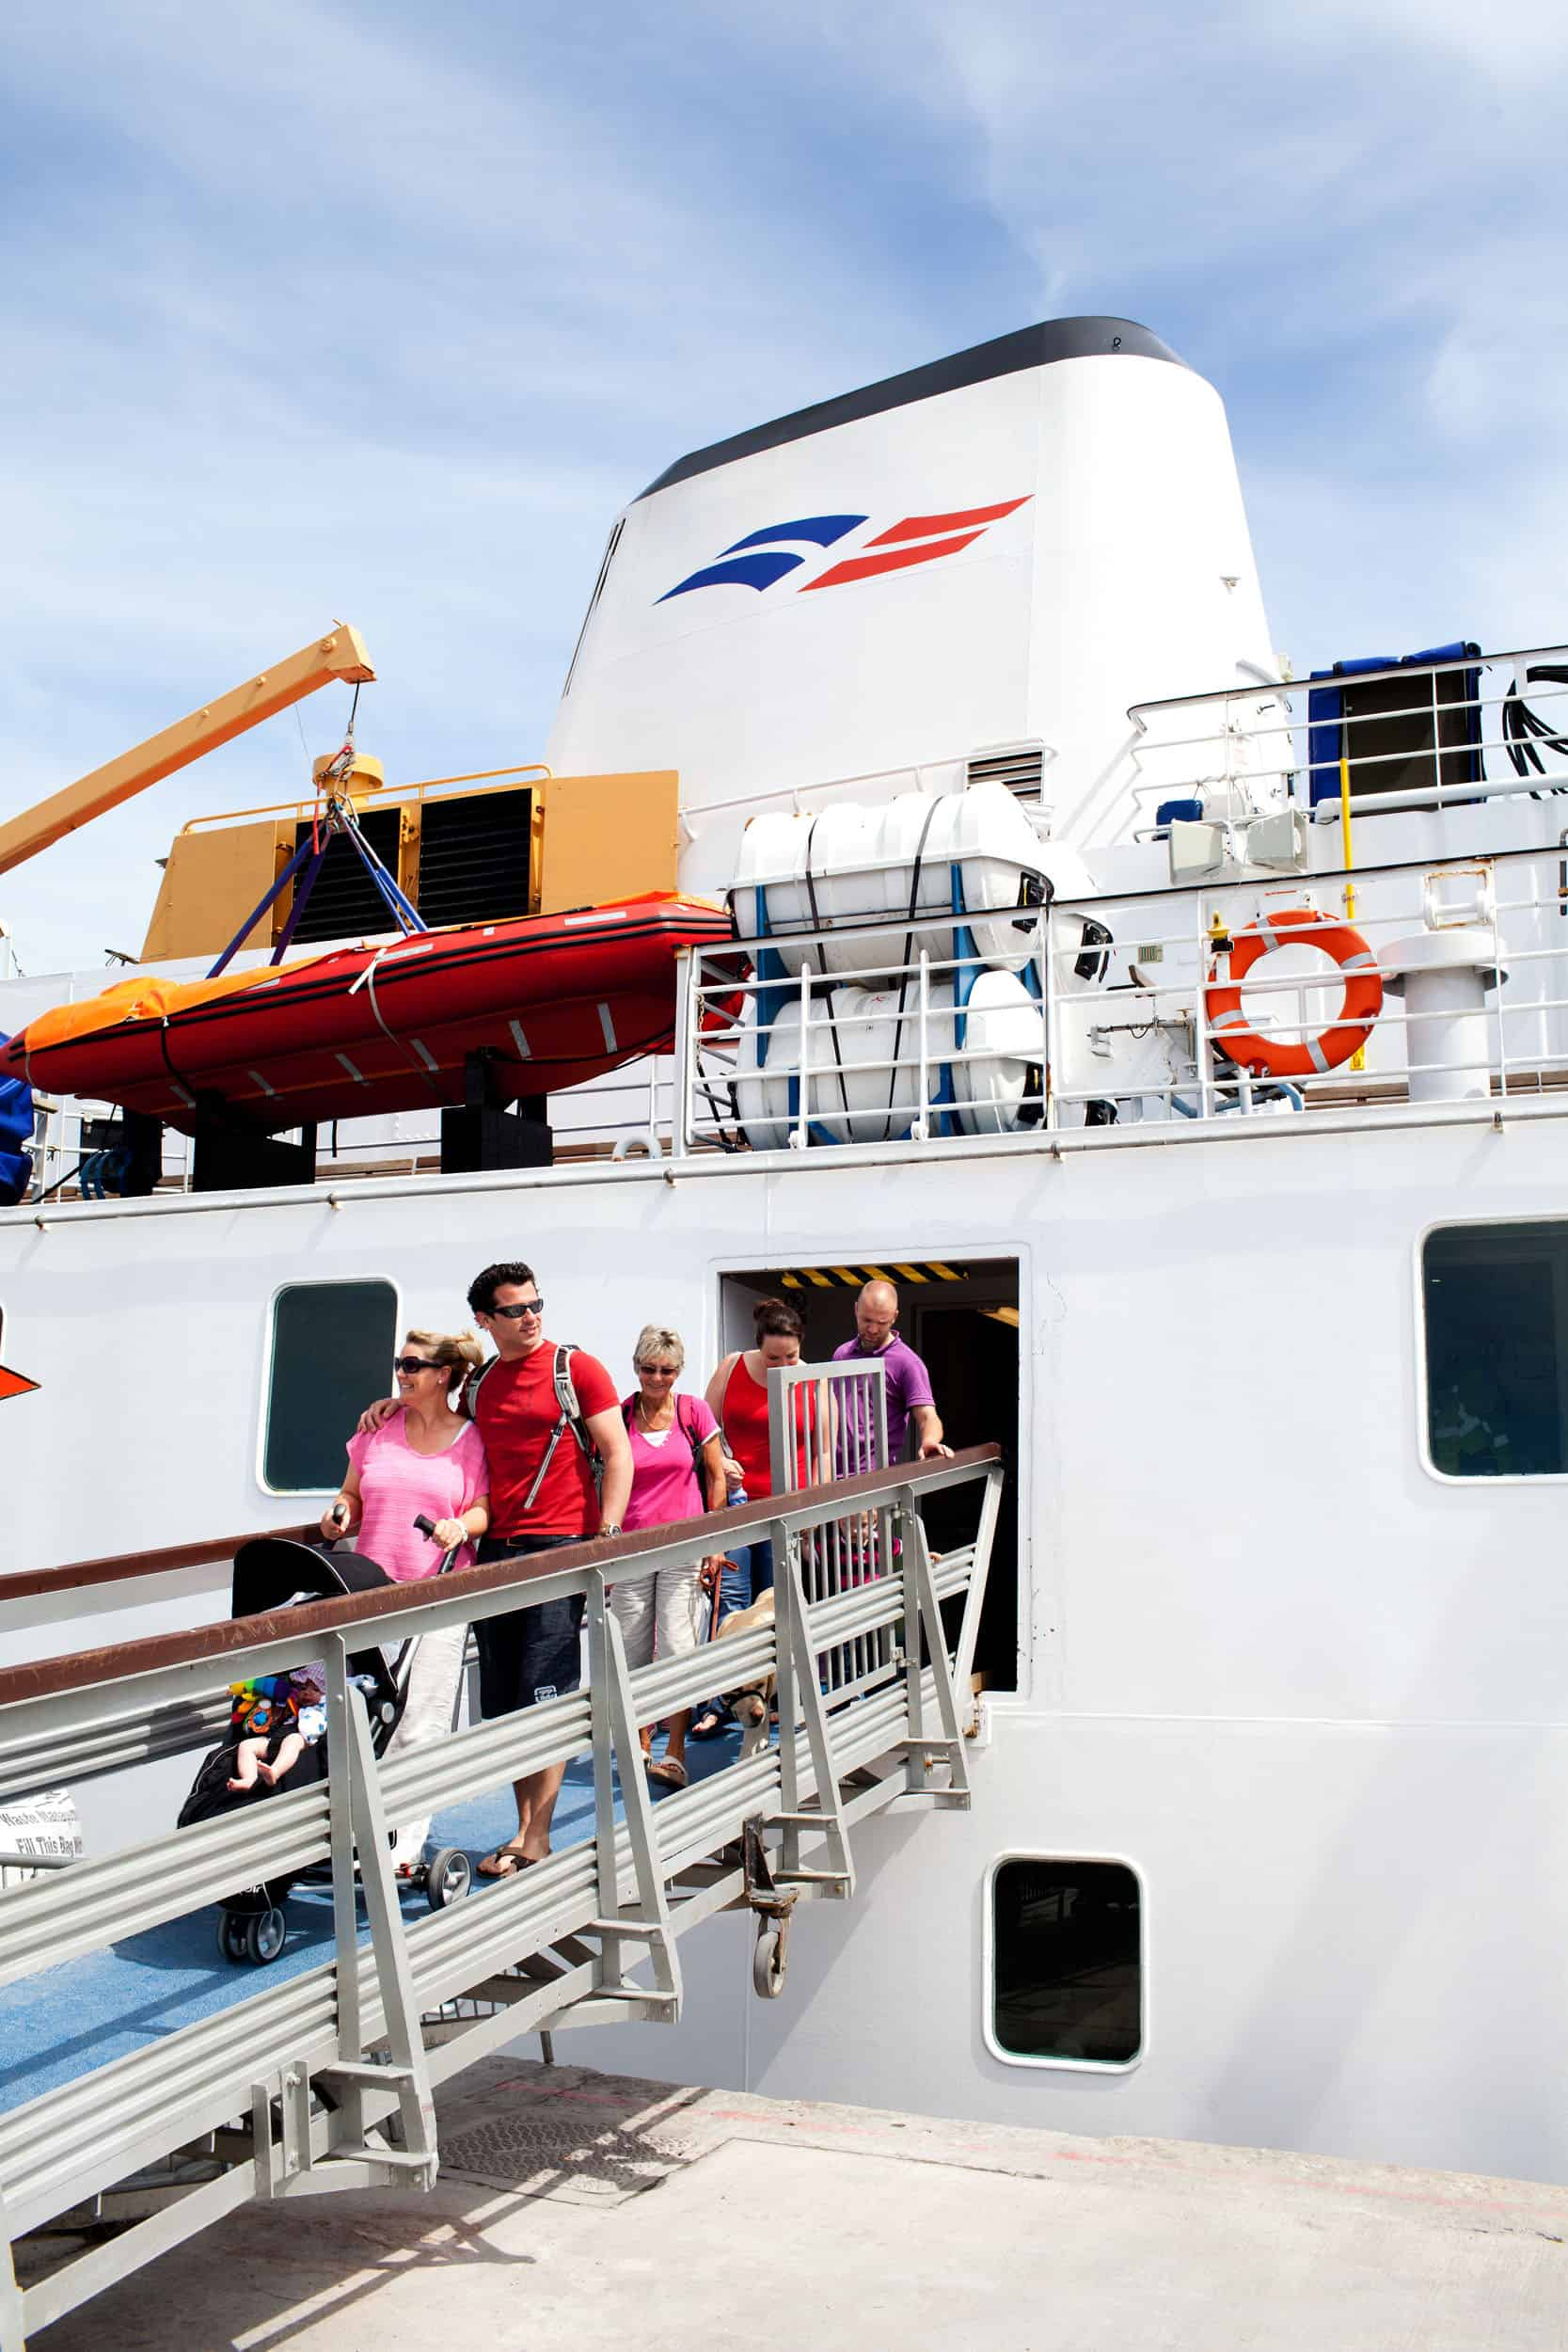 Busiest day in almost two years for Scilly's flagship routes